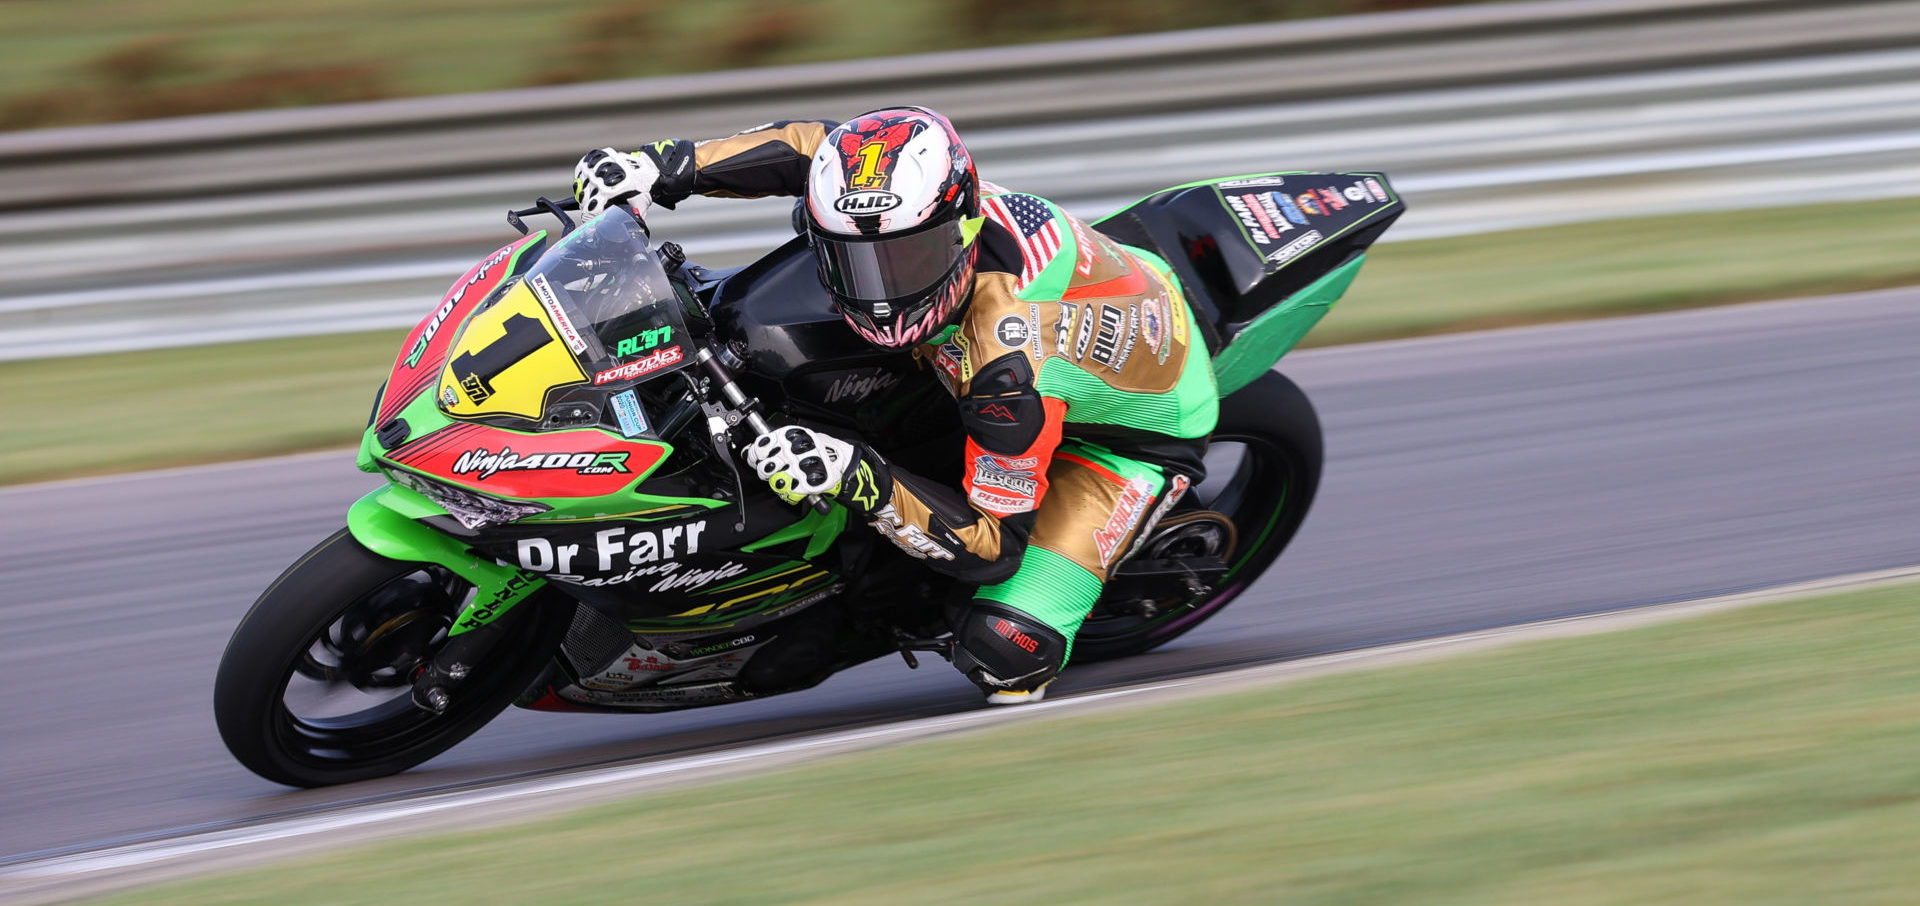 Rocco Landers (1) in action at Barber Motorsports Park. Photo by Brian J. Nelson.